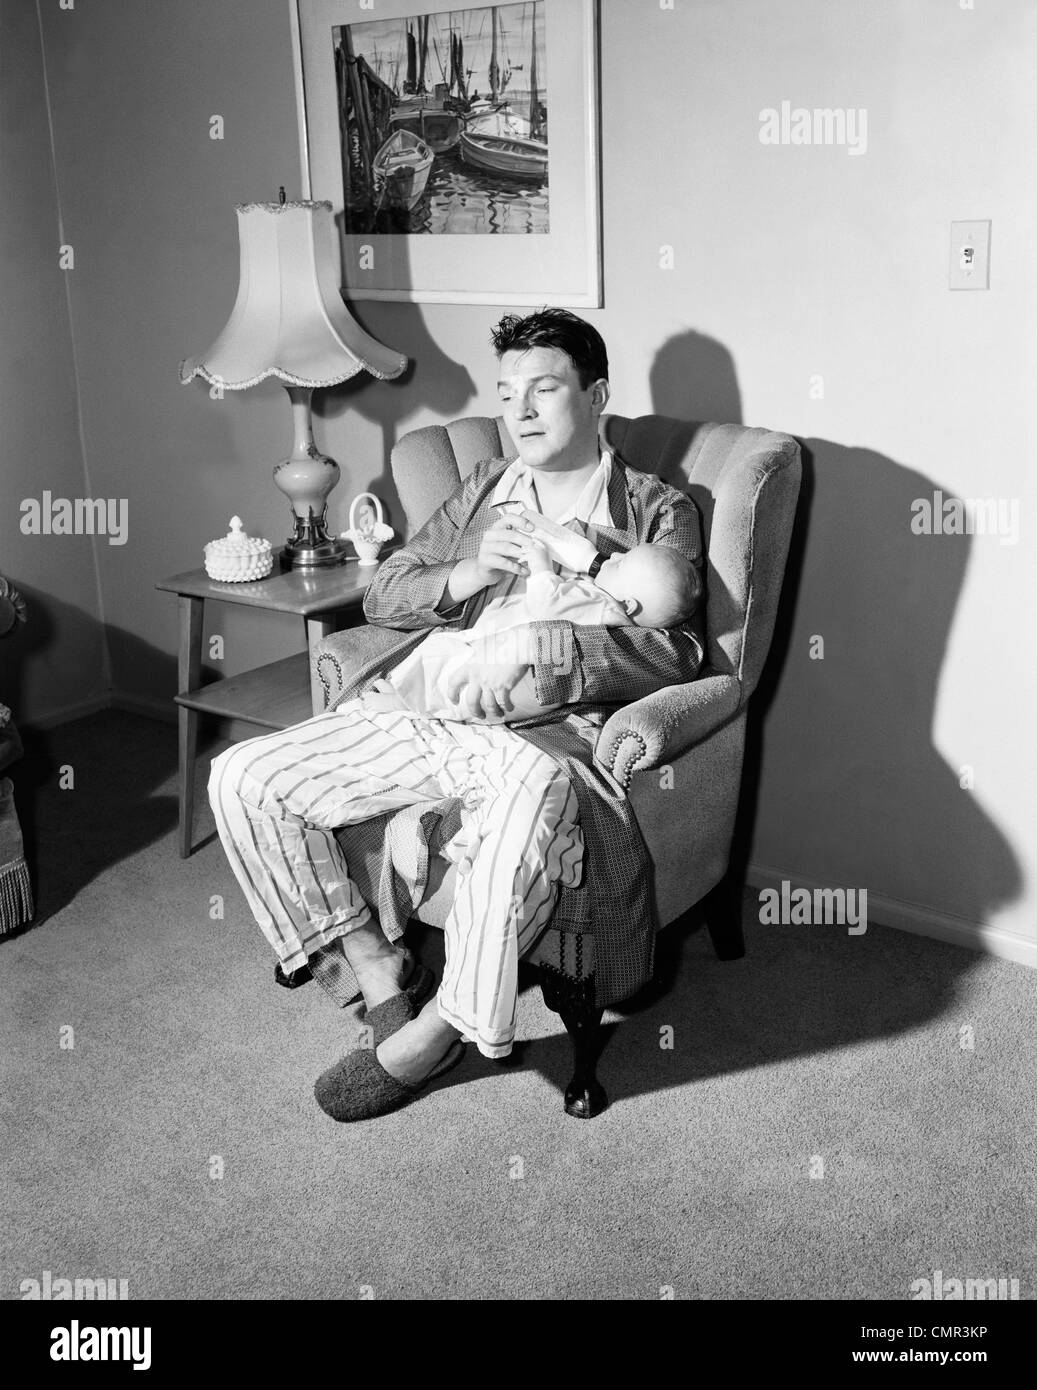 1950s Tired Father Giving Baby Bottle At Nighttime Feeding